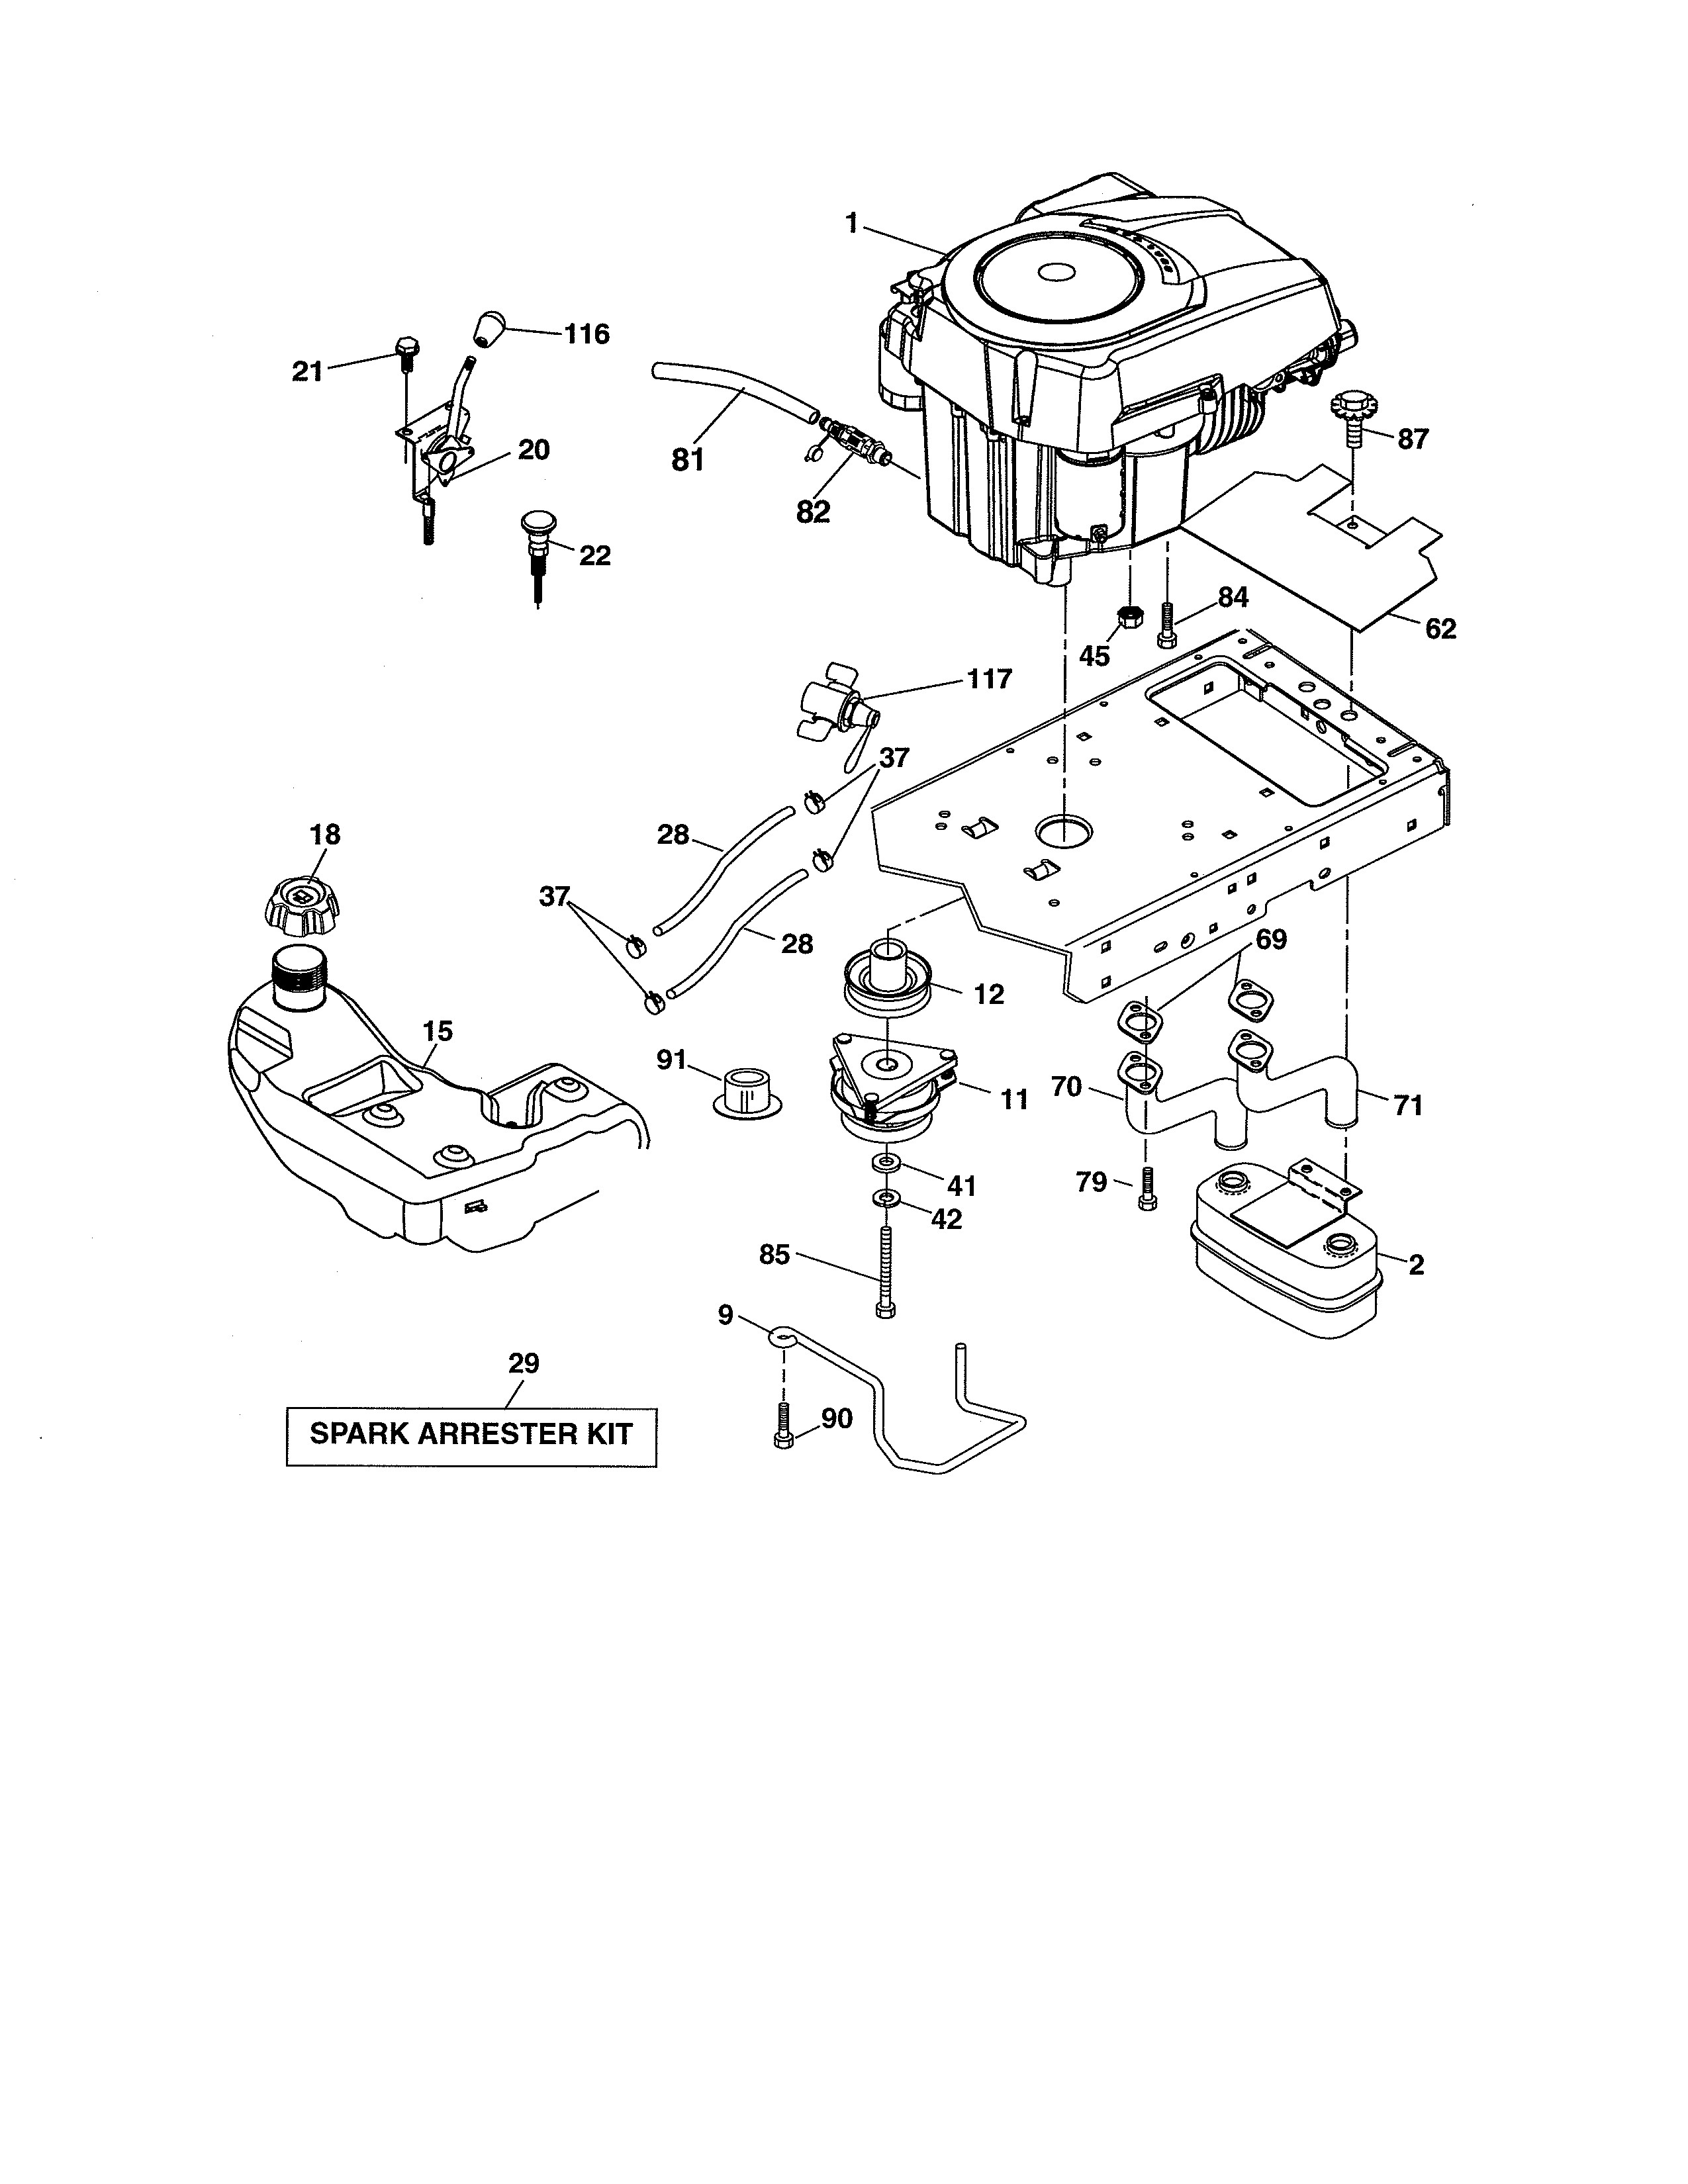 Craftsman Riding Lawn Mower Parts Diagram Craftsman Model Lawn Tractor Genuine Parts Of Craftsman Riding Lawn Mower Parts Diagram